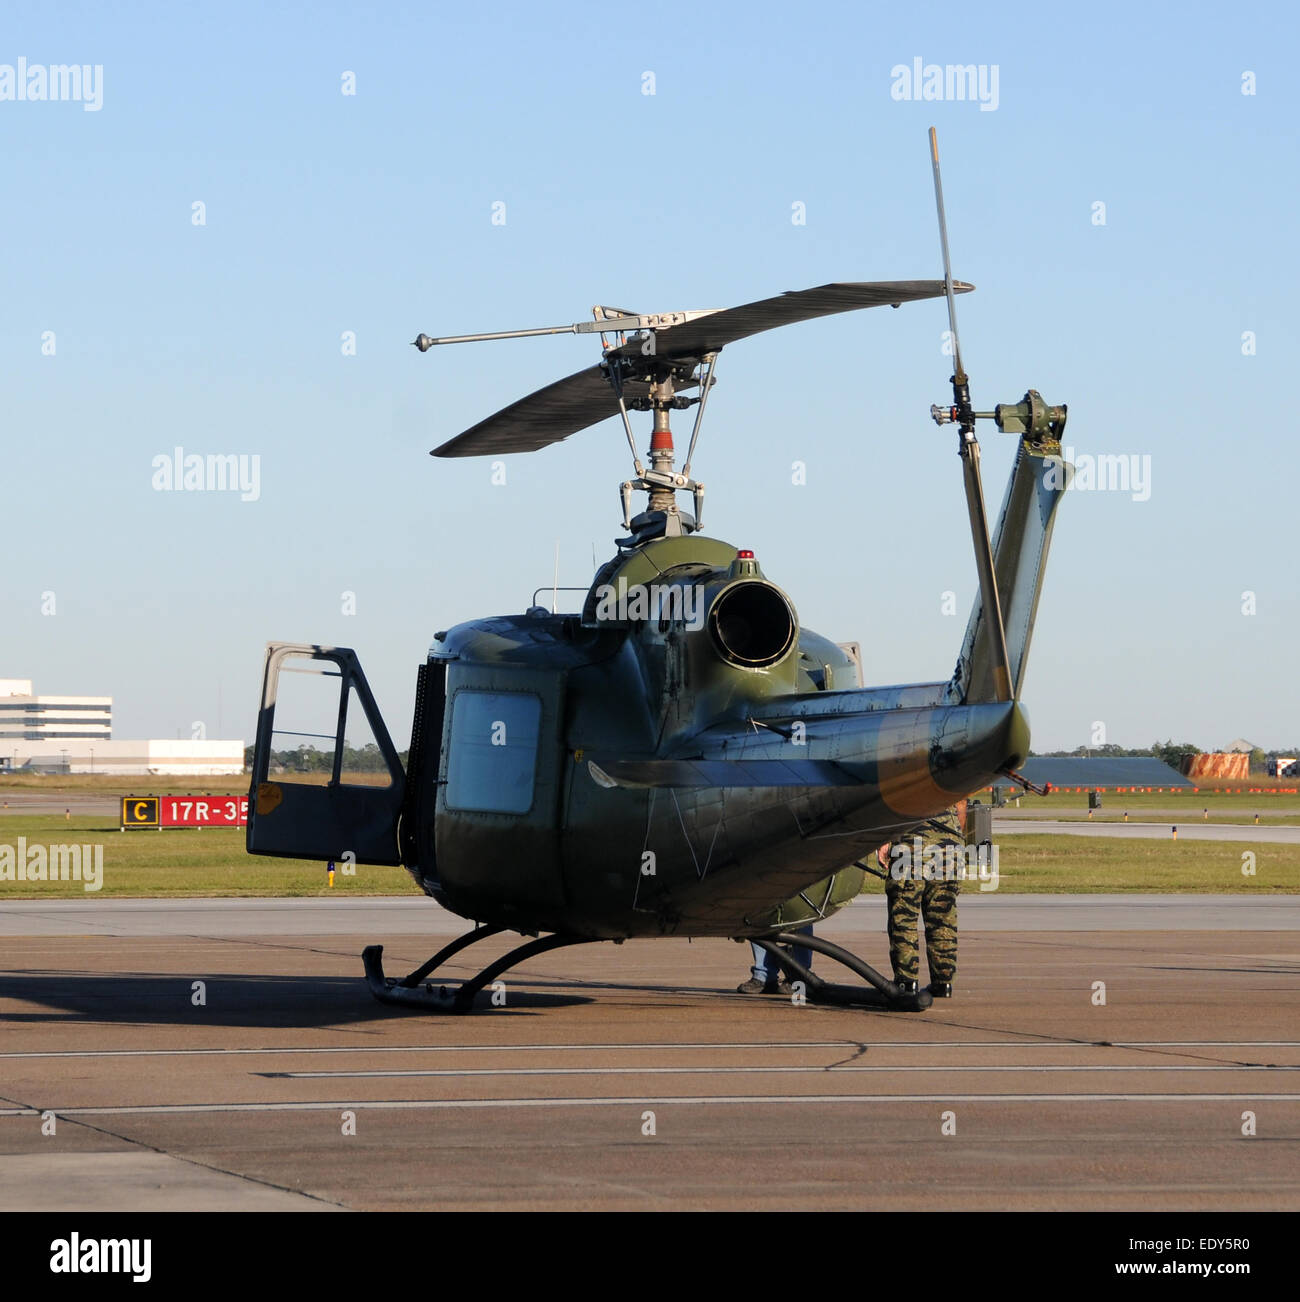 Vietnam War era helicopter on the ground rear view UH-1 Huey